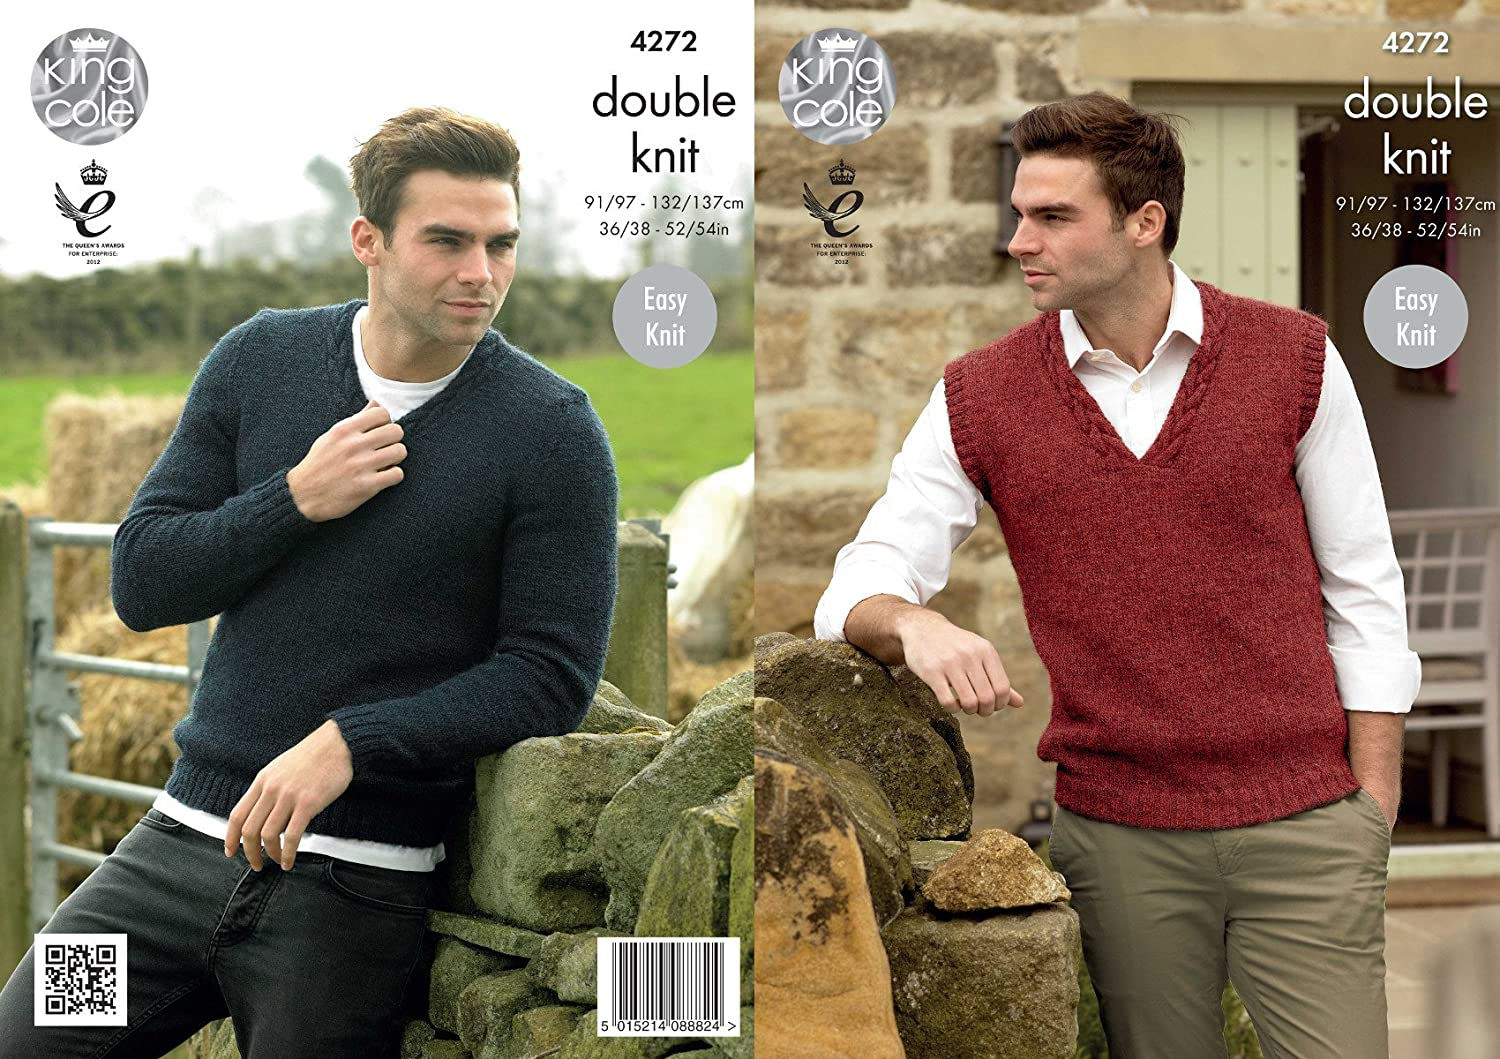 King Cole Mens Double Knitting Pattern V Neck Cable Detail Sweater & Slipover Panache DK (4272)